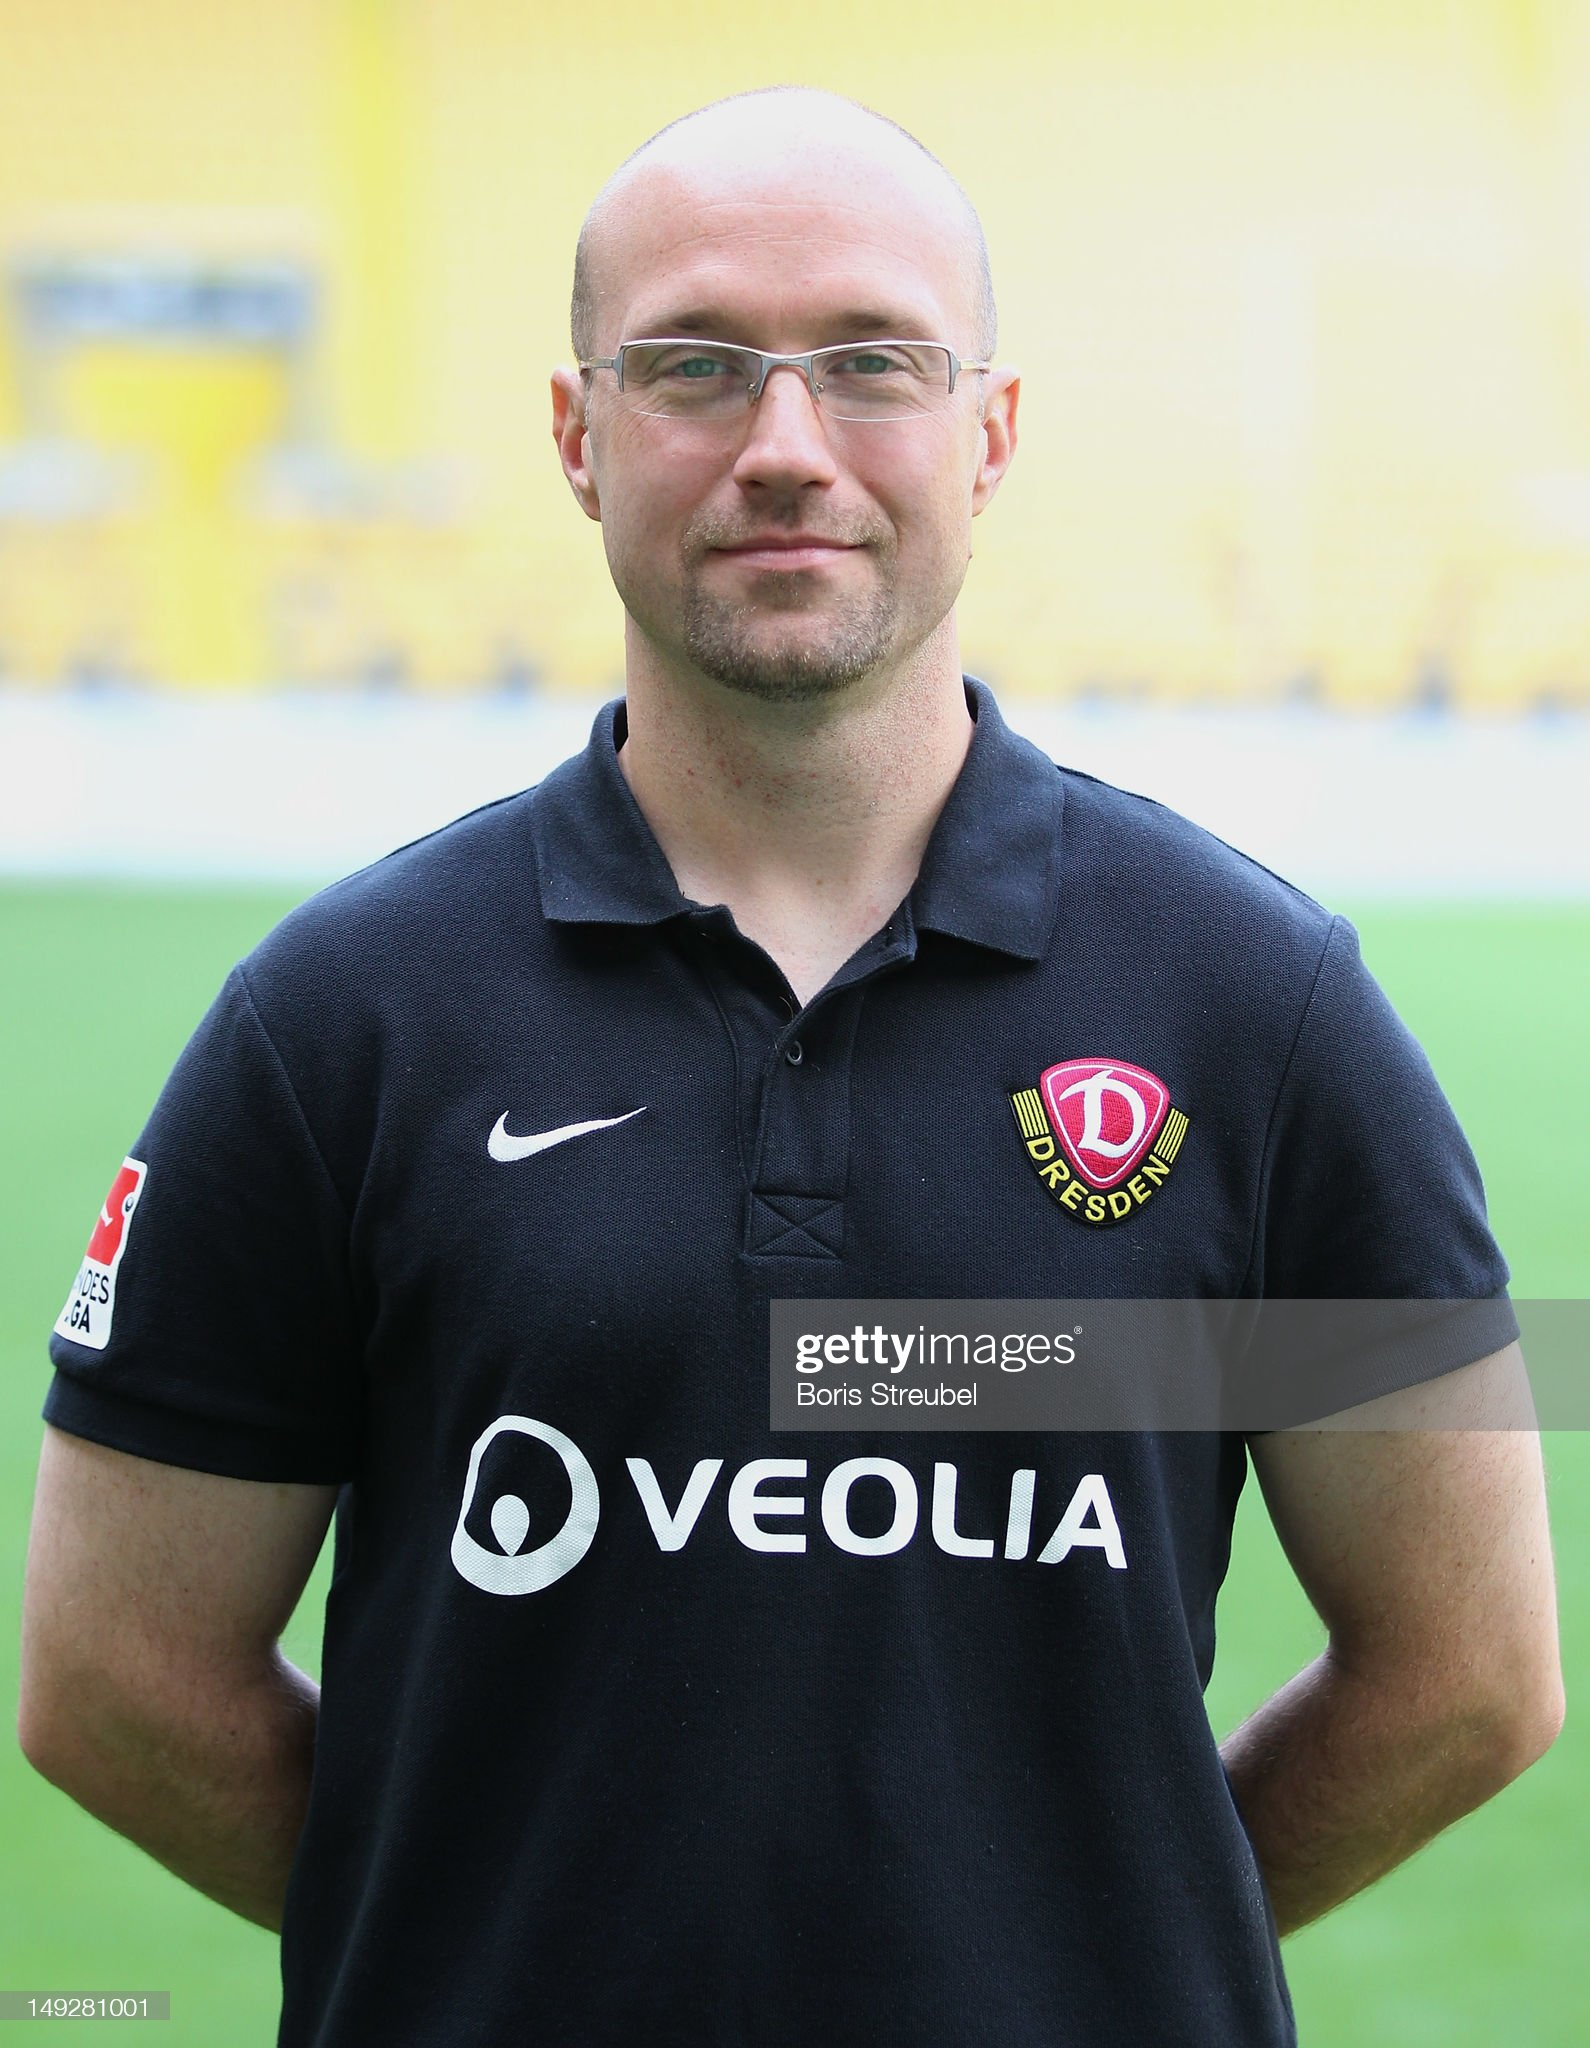 https://media.gettyimages.com/photos/physiotherapist-arndt-proehl-of-dynamo-dresden-poses-during-the-picture-id149281001?s=2048x2048